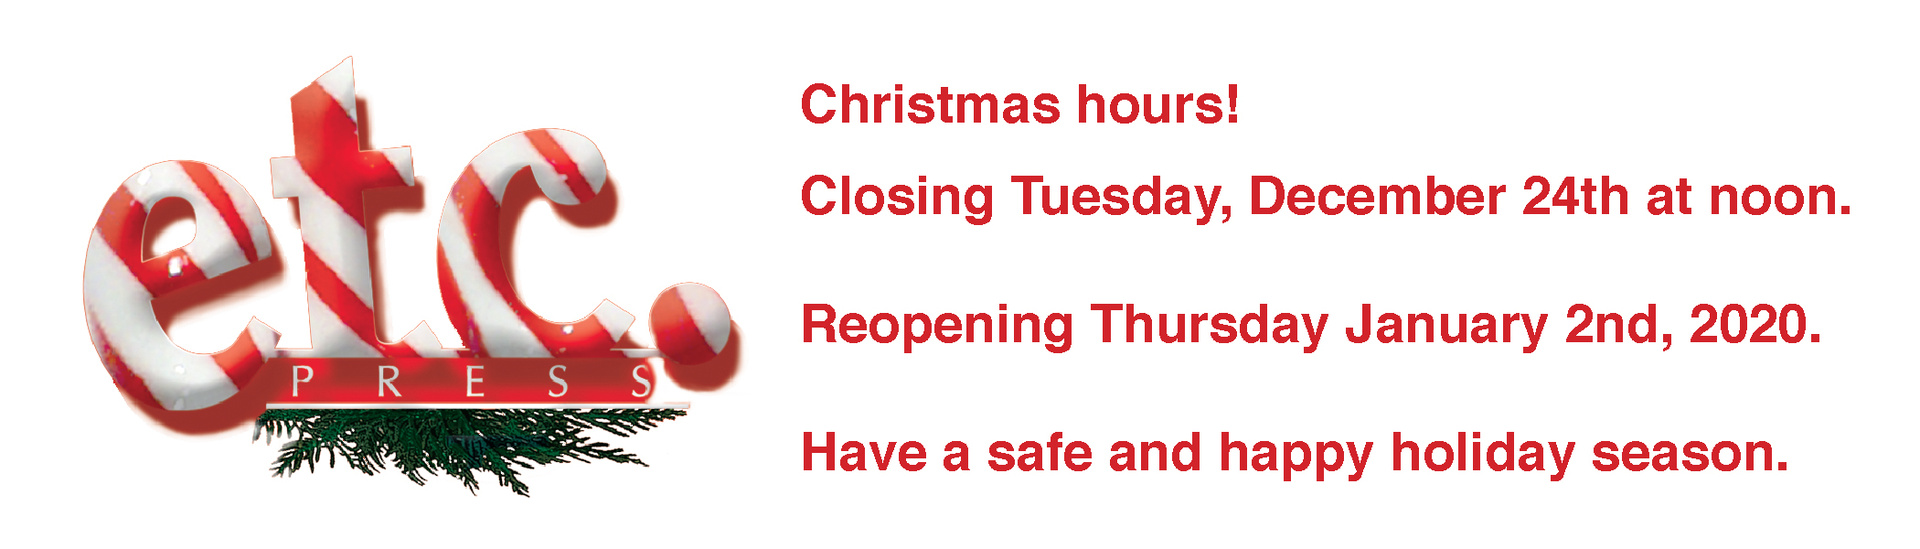 Christmas hours!   Closed Friday December 21 at 5pm, reopening Wednesday January 2nd, 2019 at 8:30 am. Have a safe and happy holiday season.